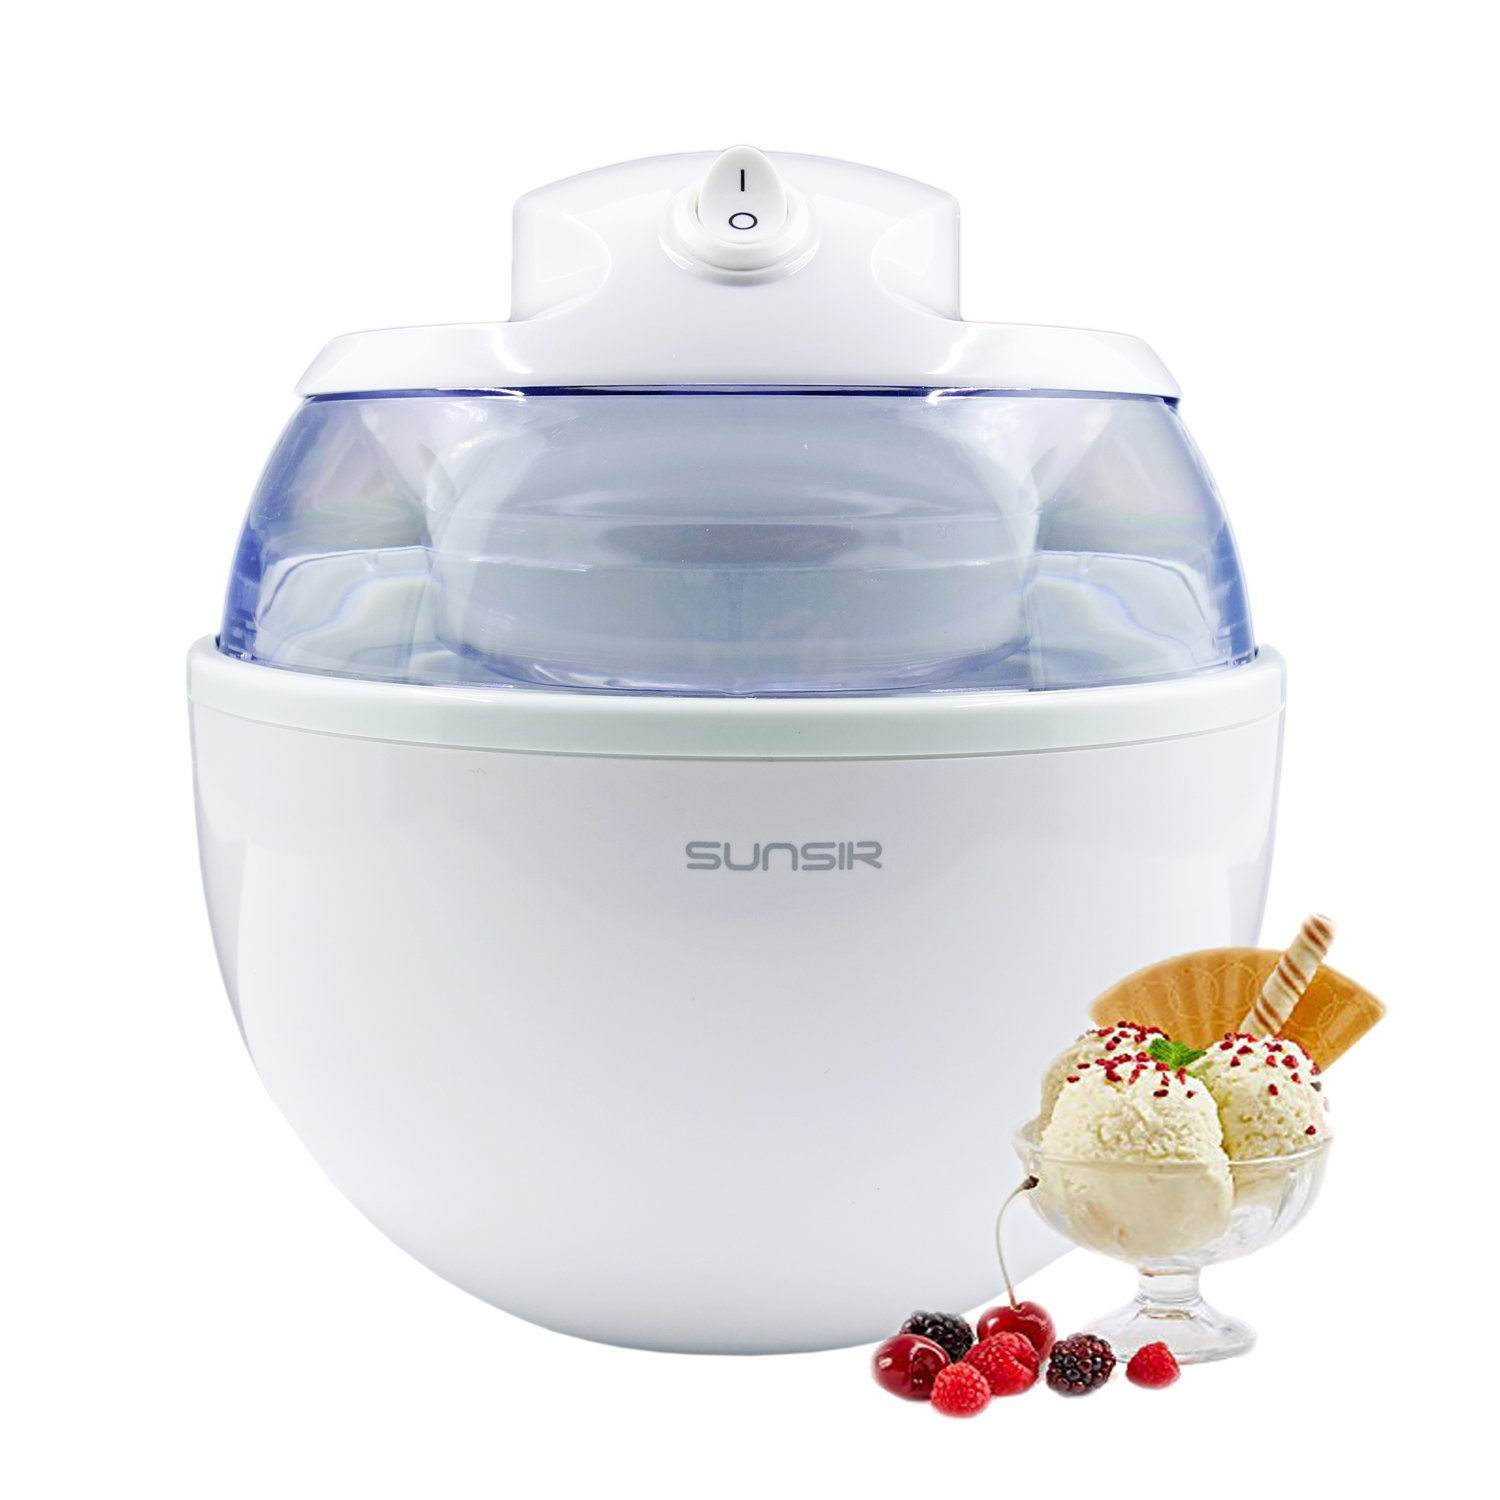 Sunsir Home Mini Automatic Ice Cream, Frozen Yogurt and Sorbet Dessert Maker Machine for DIY Fun, Customize Your Own Flavor 3/5-Quart/0.6L, White ICM6